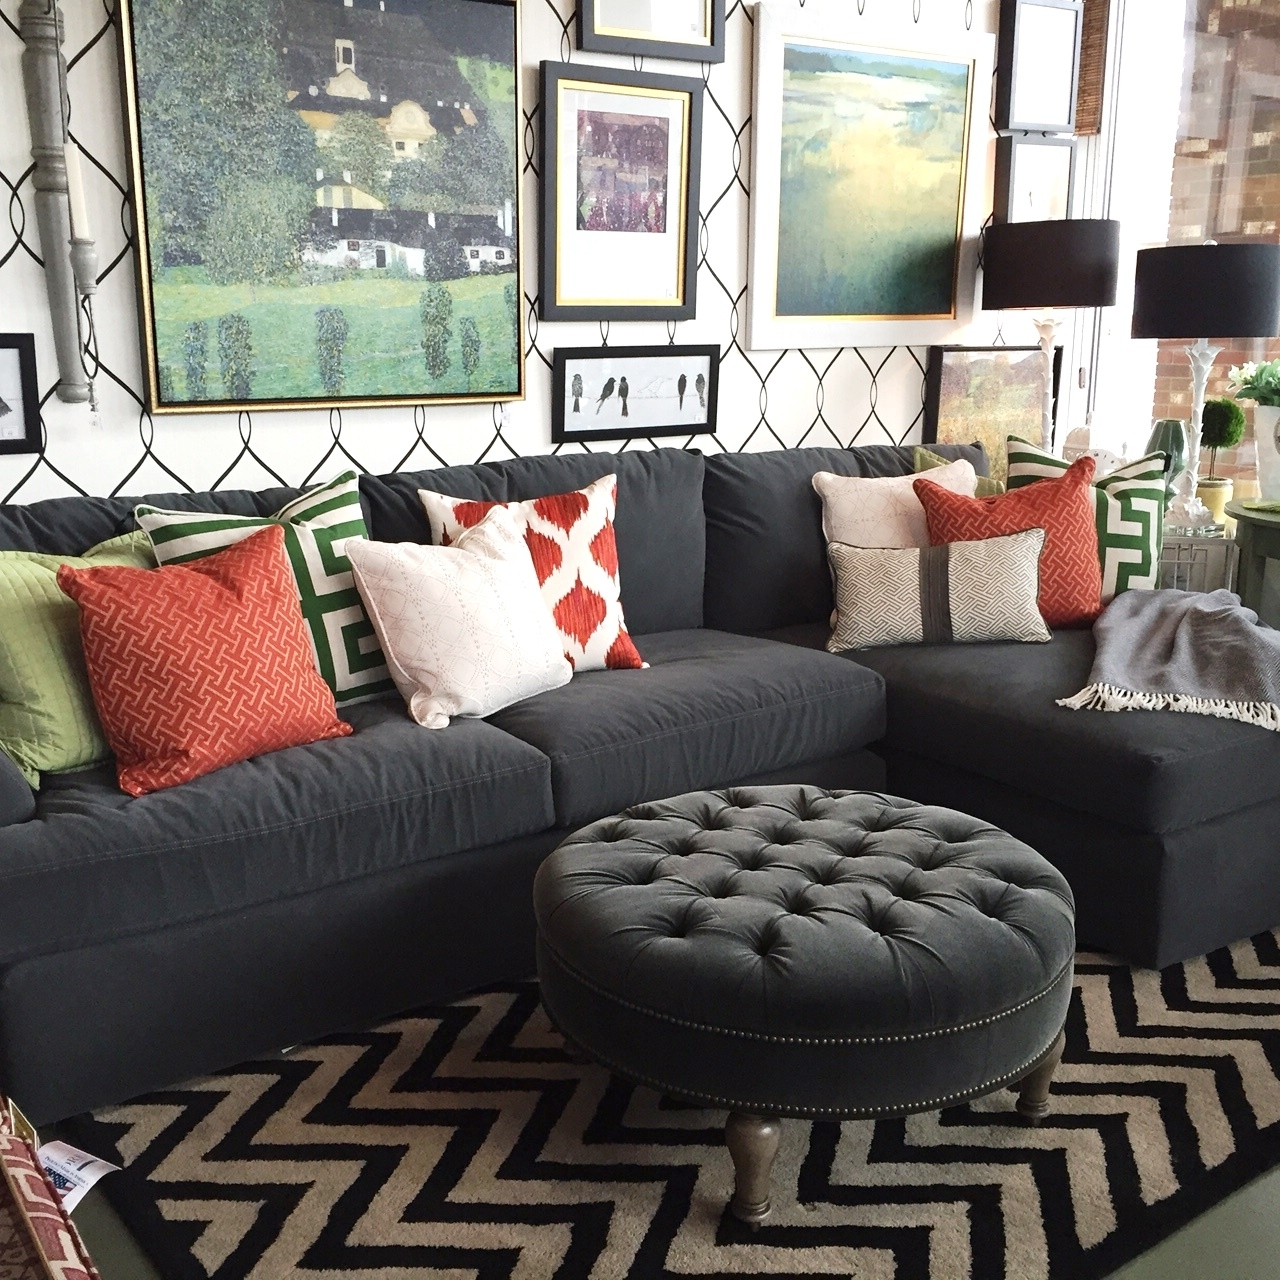 Sectional Sofas In Small Spaces | Trellis Of Erie inside Erie Pa Sectional Sofas (Image 6 of 10)